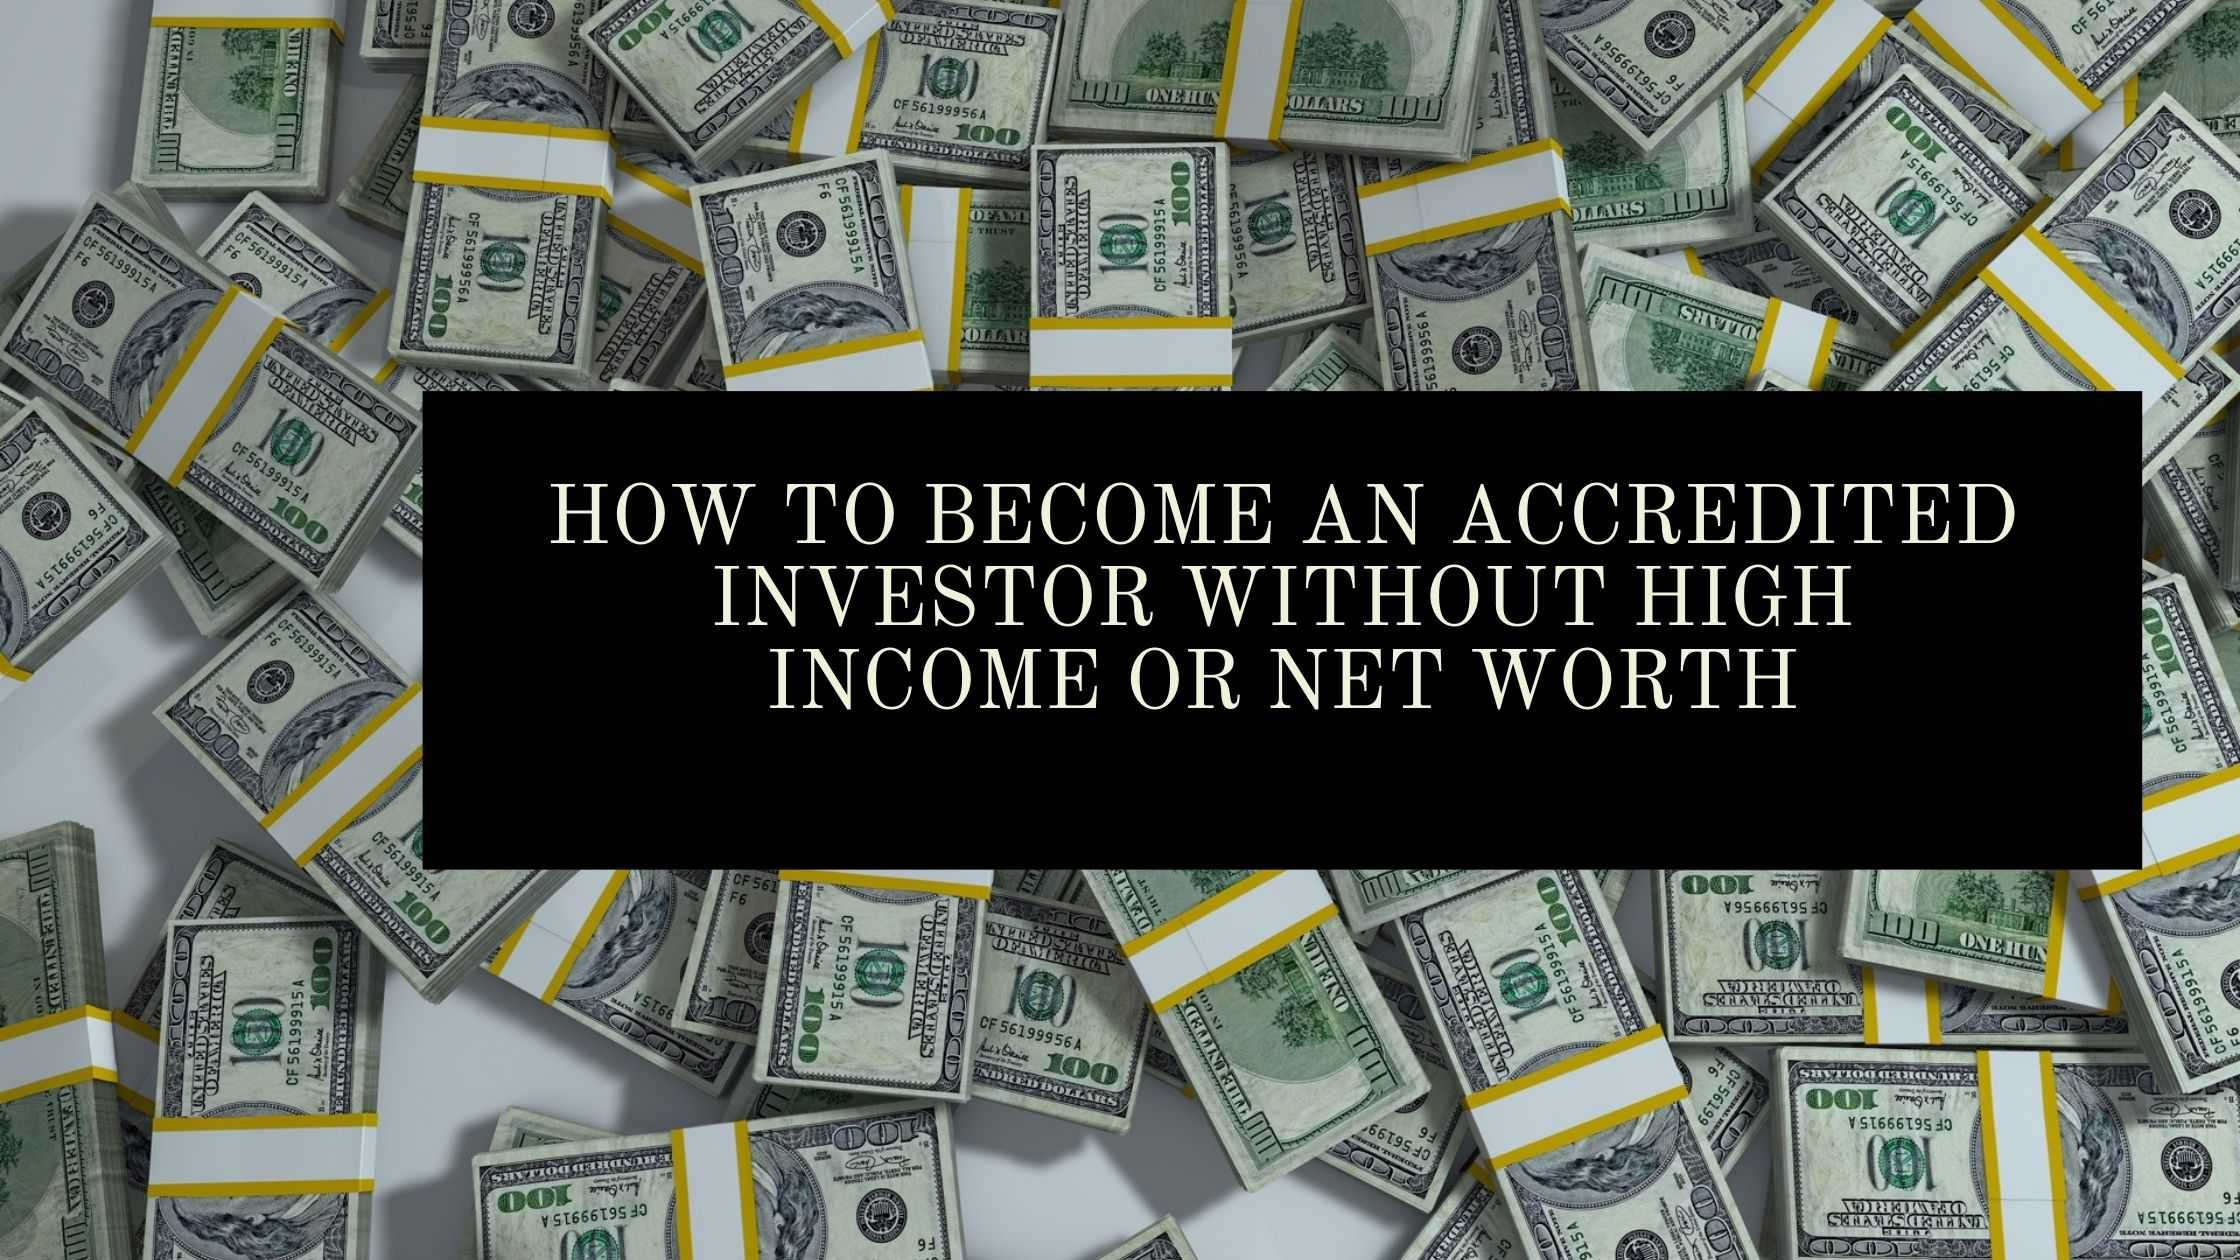 Accredited Investor Qualifications